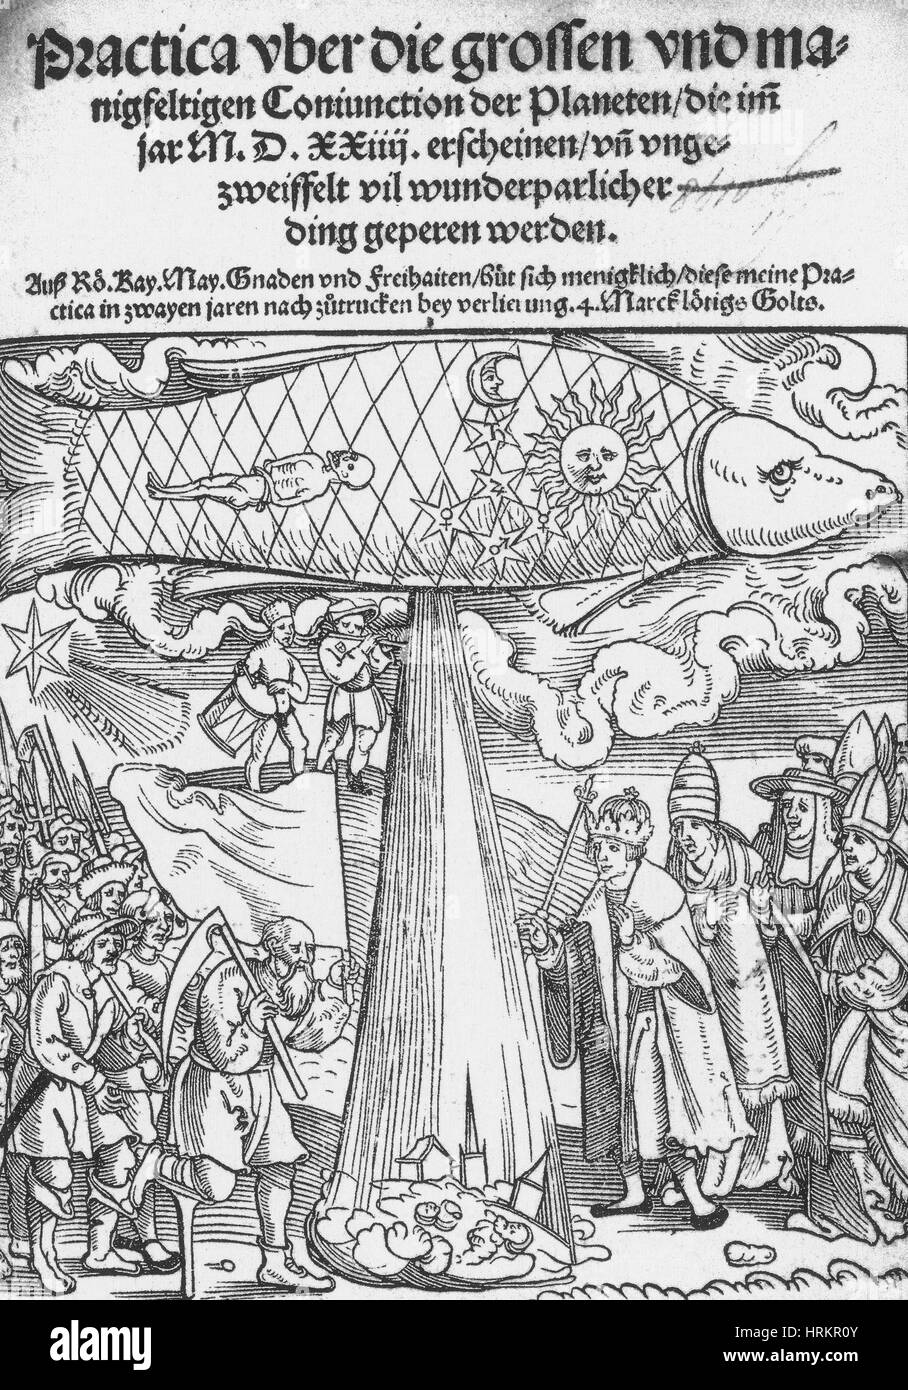 The Great Conjunction, Predicted Floods, 1524 - Stock Image